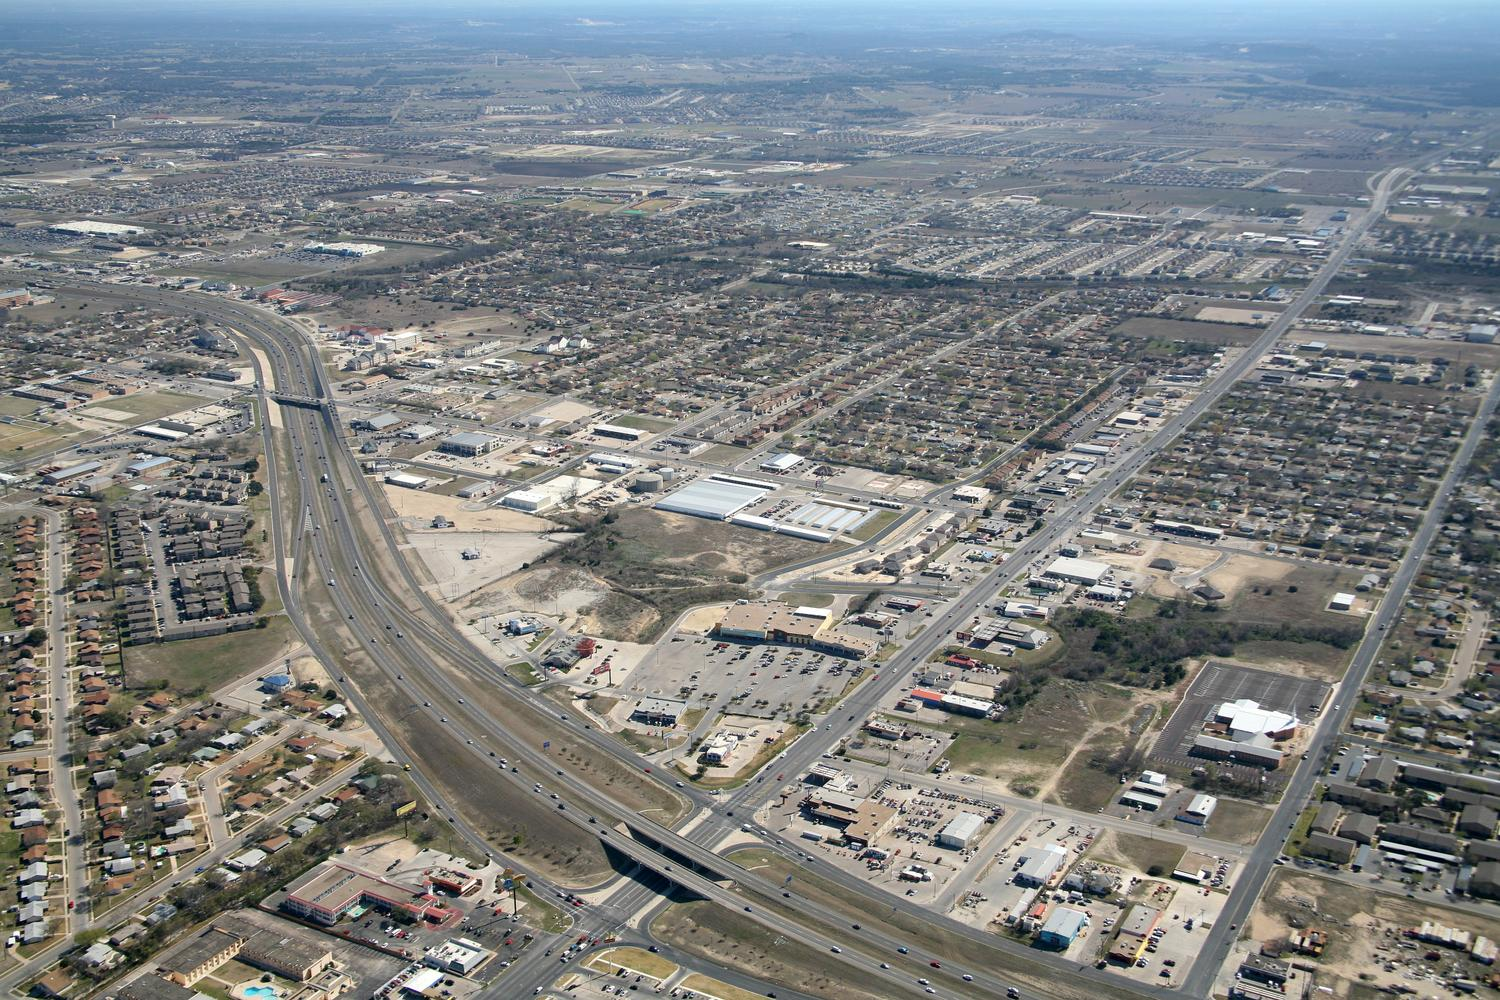 Retail Shopping Center, Killeen, Texas - Fort Hood Aerial Photographer - Killeen Aerial Drone Image - Aerial Drone Video - Killeen, TX - Central Texas